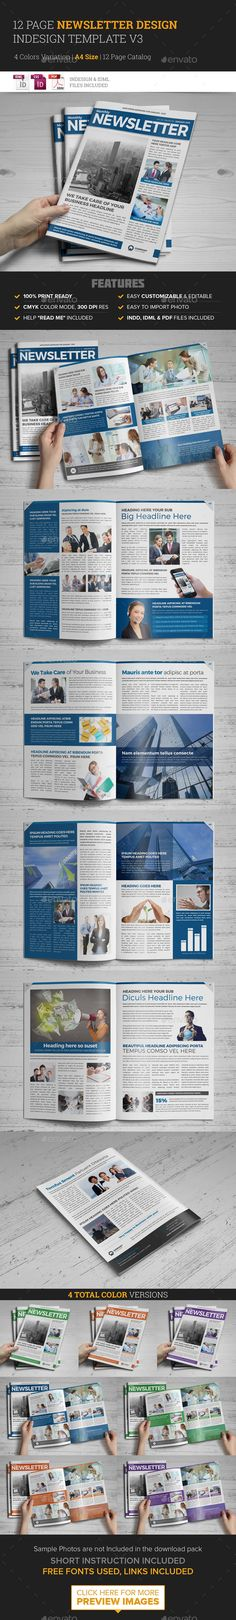 Newsletter Indesign Template v3  - Newsletters Print Templates Download here : https://graphicriver.net/item/newsletter-indesign-template-v3-/11943604?s_rank=113&ref=Al-fatih